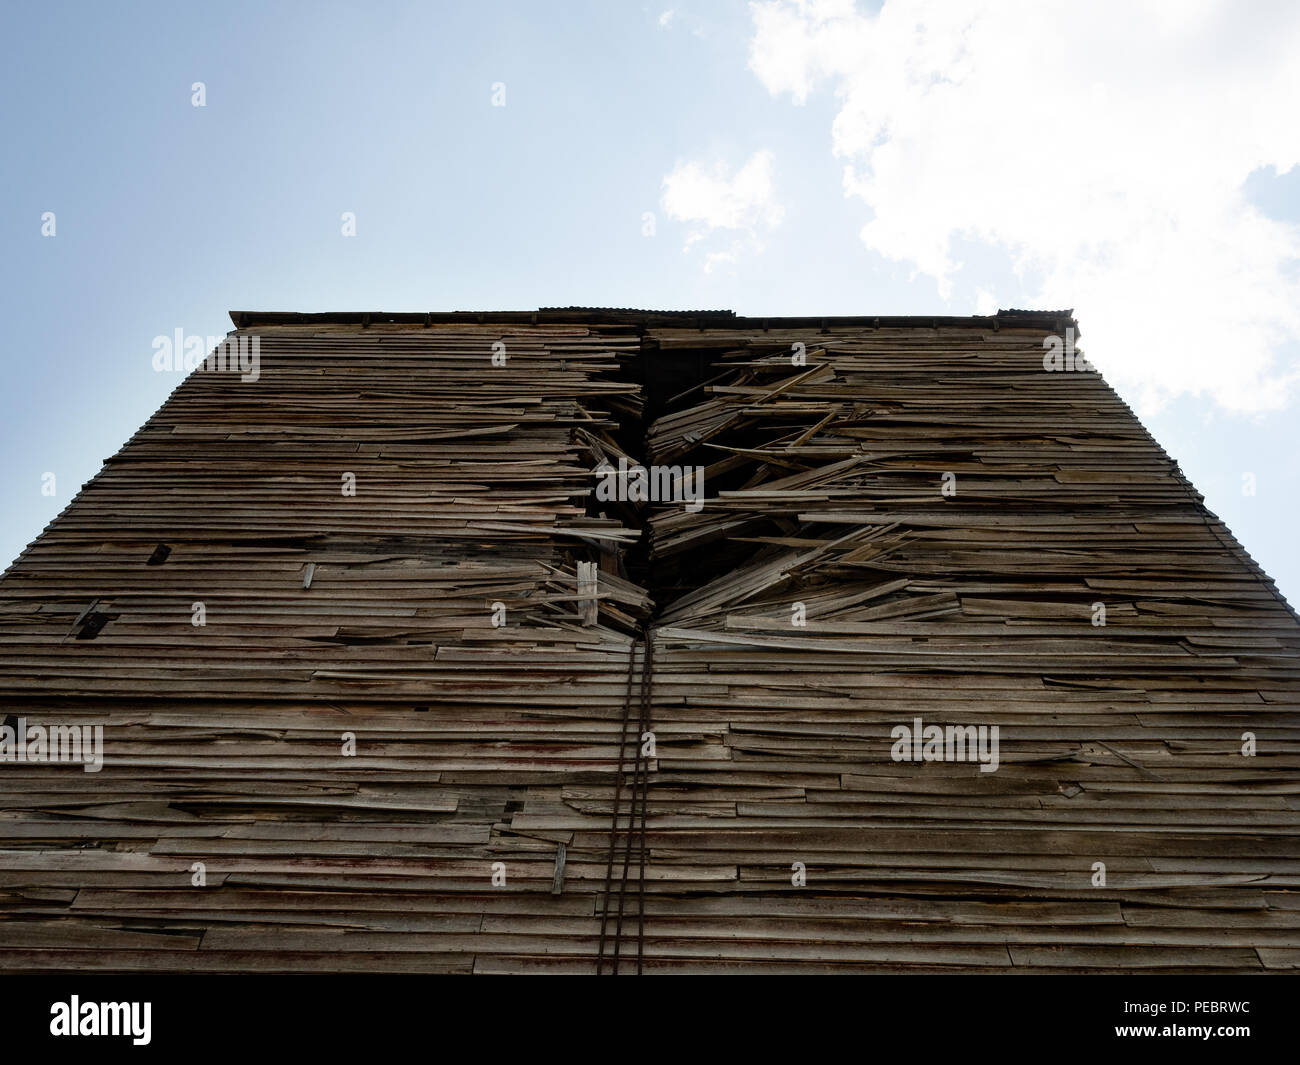 Close up of an old, damaged clapboard wood building photographed from below. - Stock Image